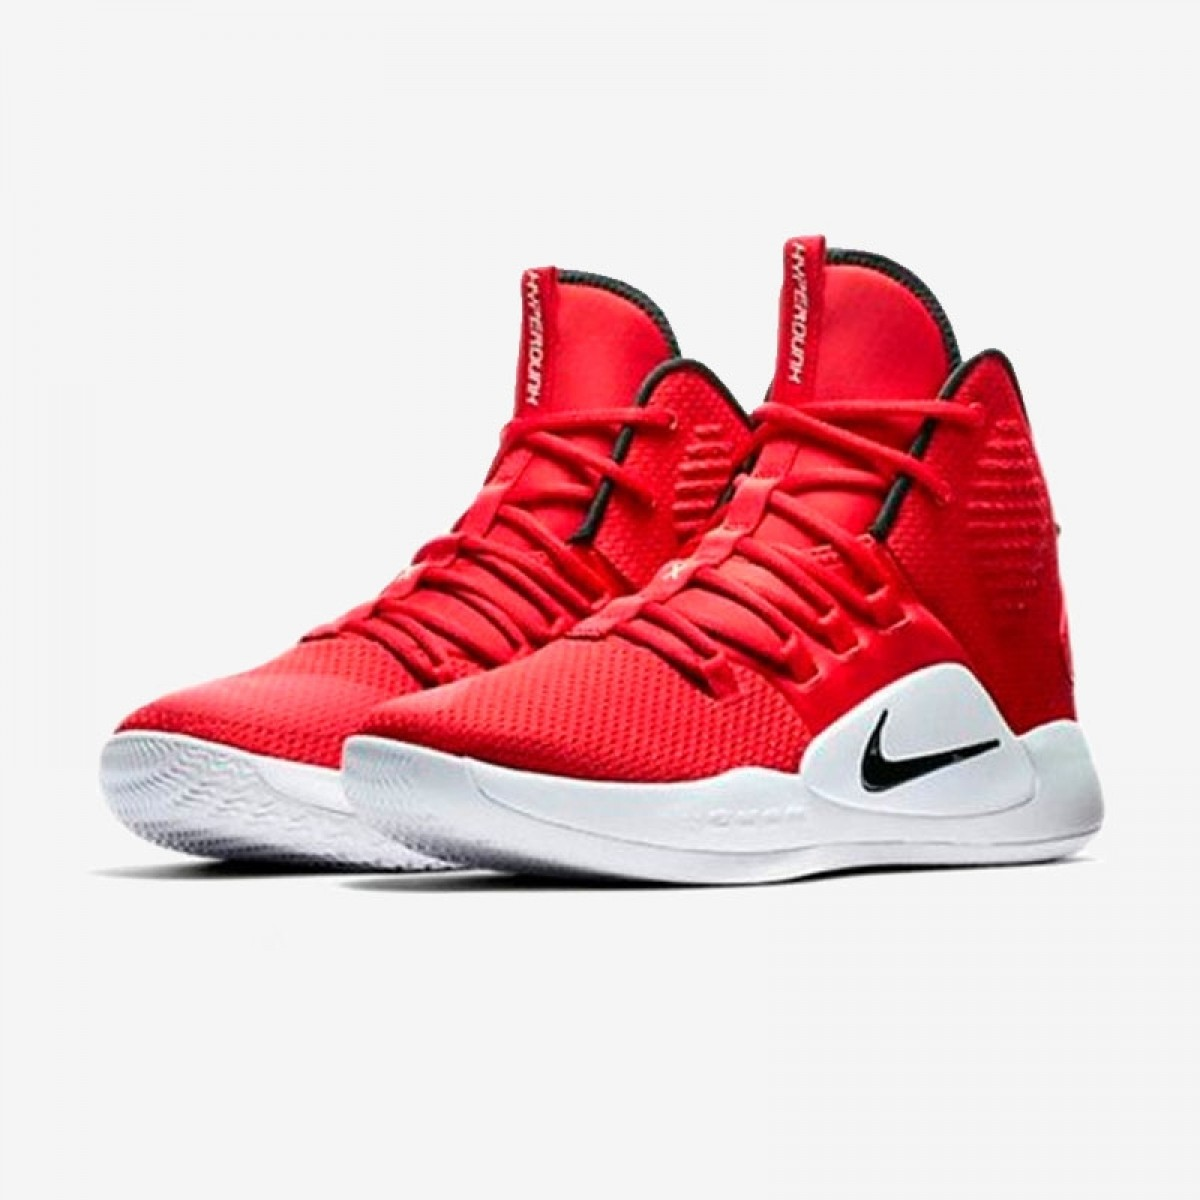 8c322929472a Buy Nike Hyperdunk X TB 2018  Red  Basketball shoes   sneakers